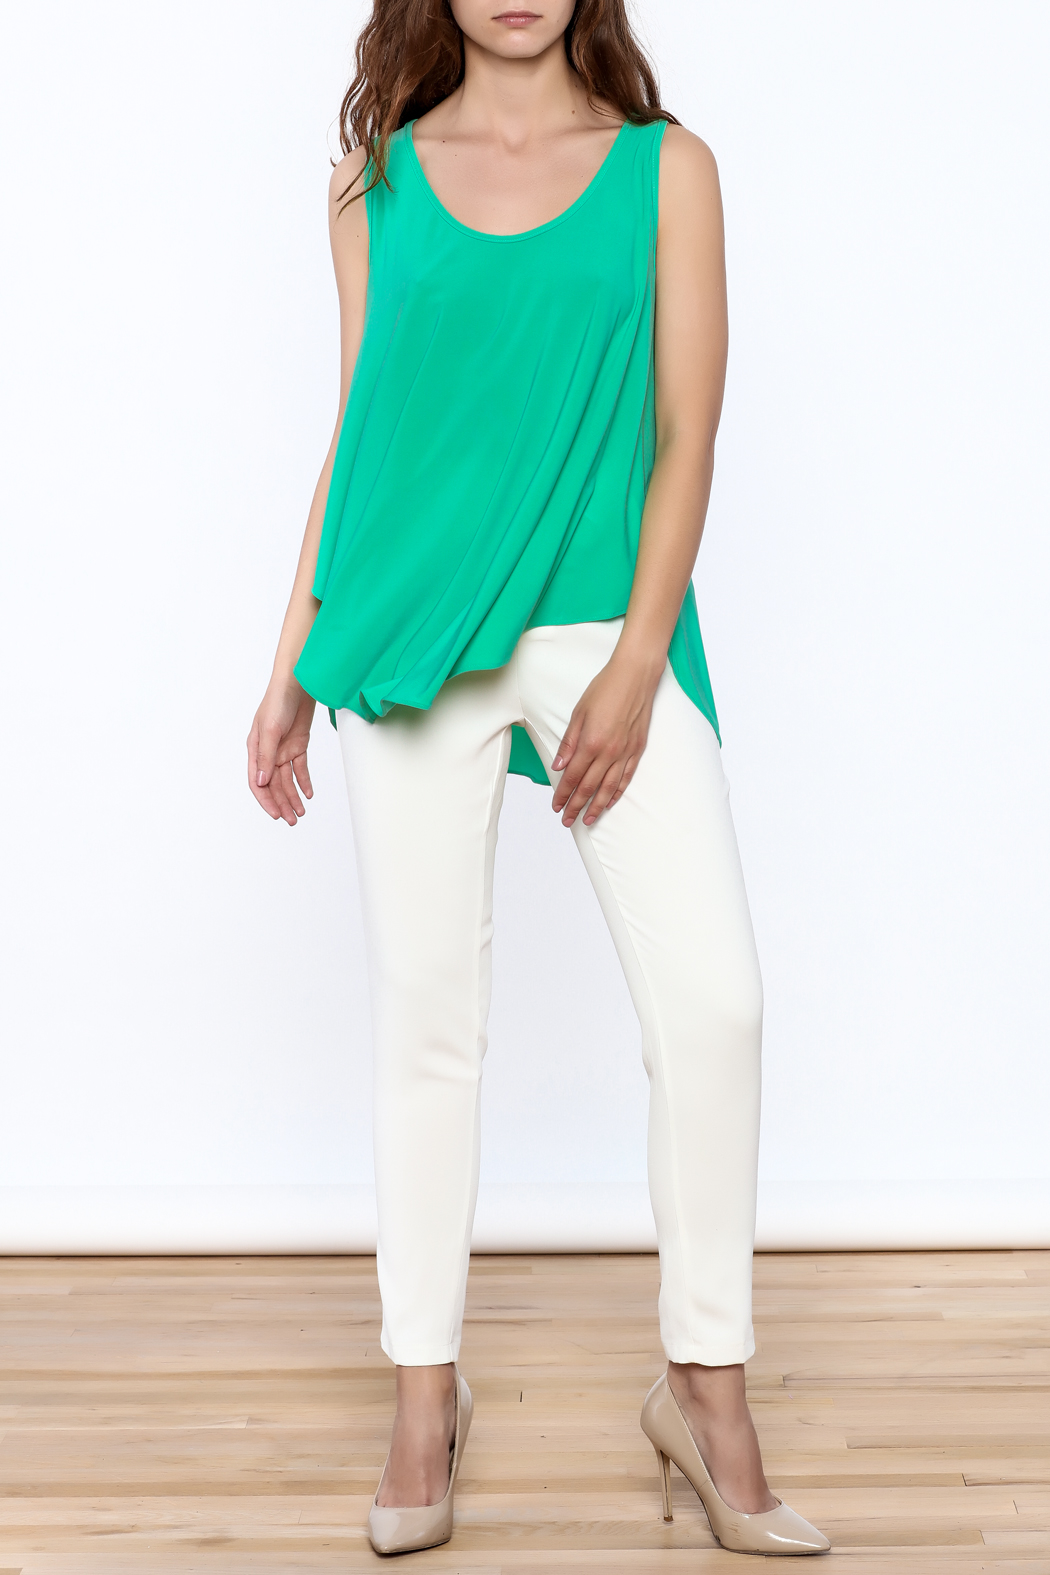 Sharon Max Green Sleeveless Swing Top - Front Full Image